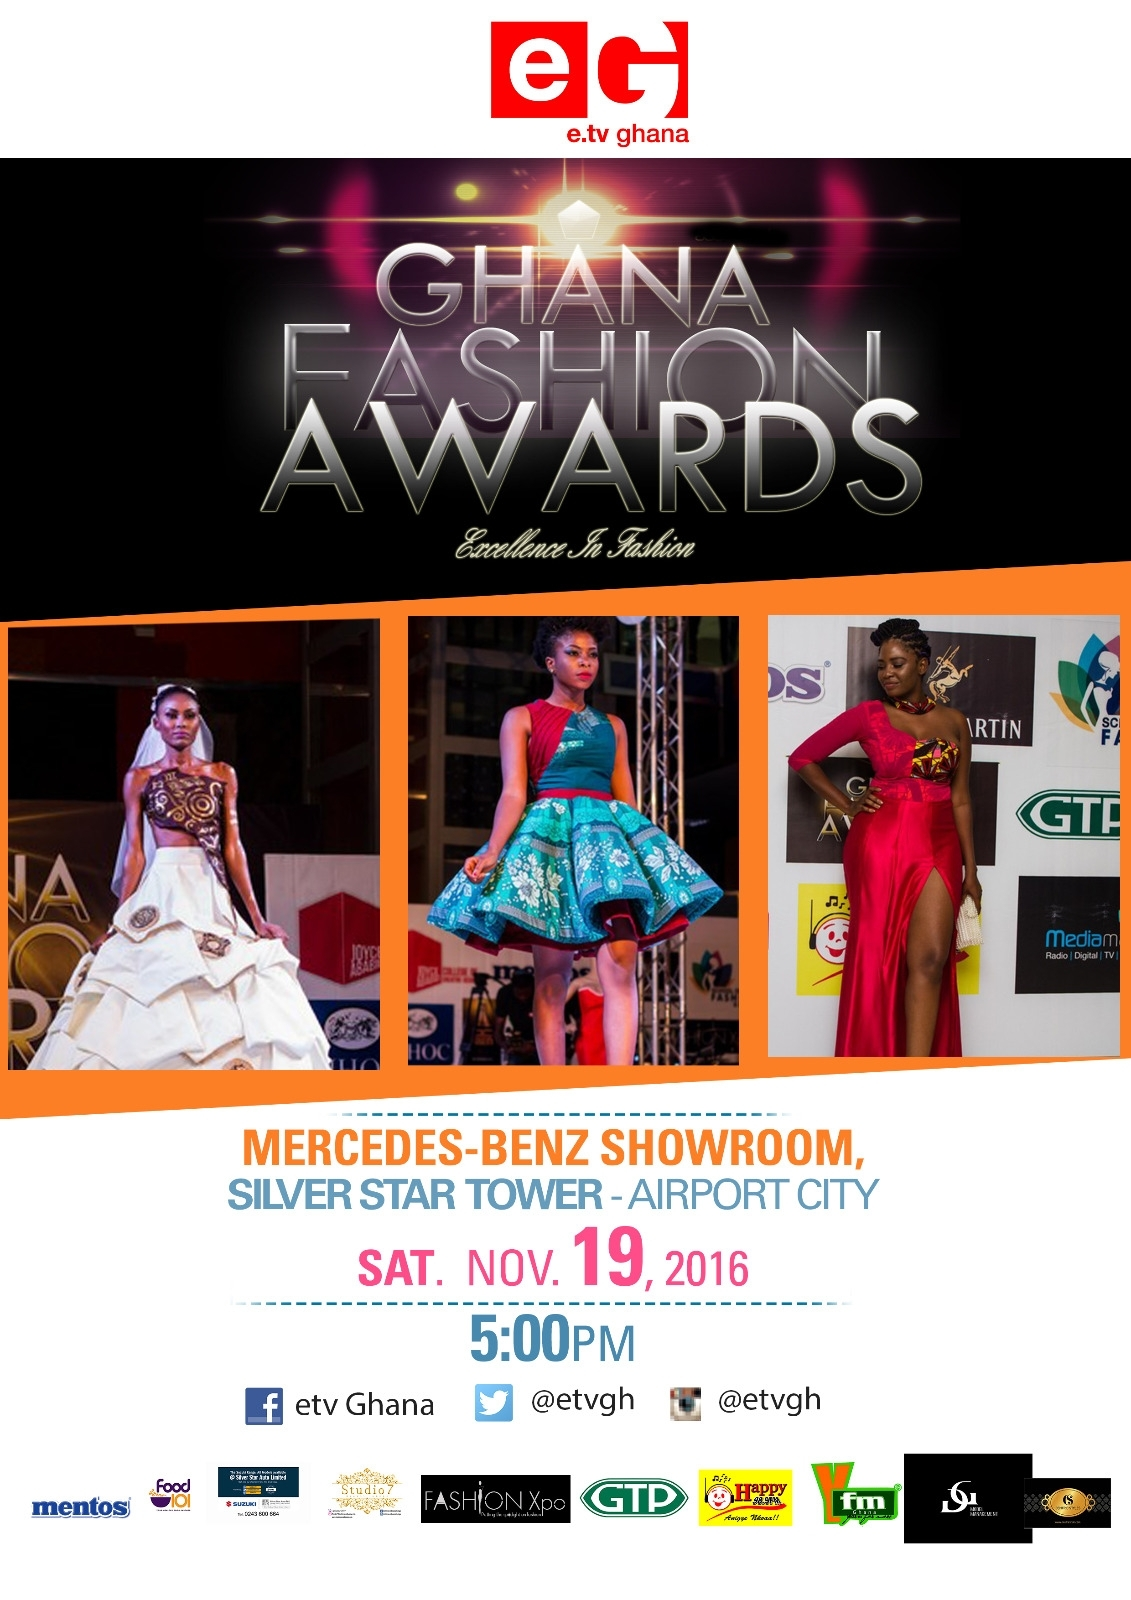 Over 70 Fashion Designers Nominated For 2016 E.Tv Ghana Fashion Awards